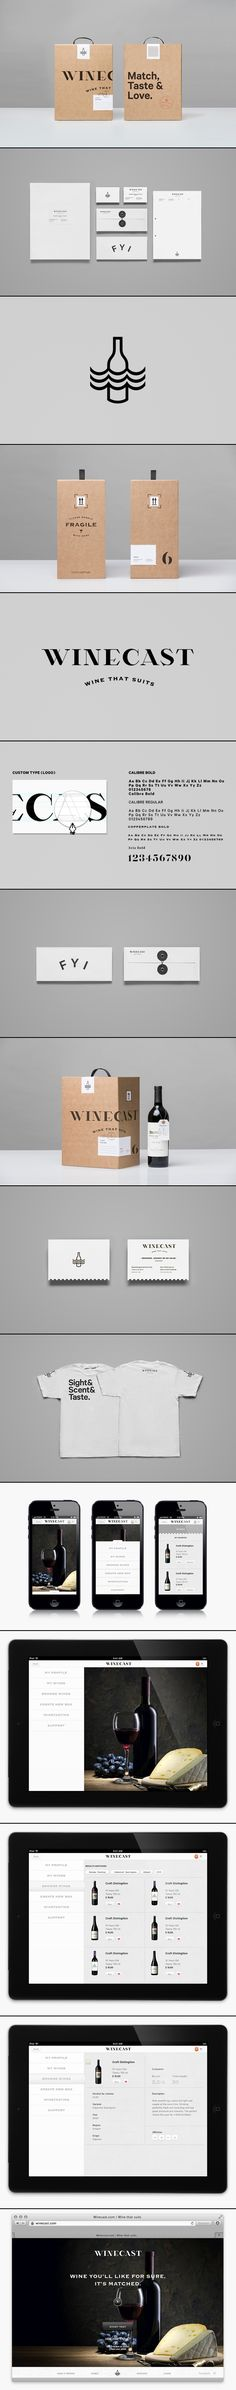 Winecast | #stationary #corporate #design #corporatedesign #identity #branding #marketing < repinned by www.BlickeDeeler.de | Take a look at www.LogoGestaltung-Hamburg.de